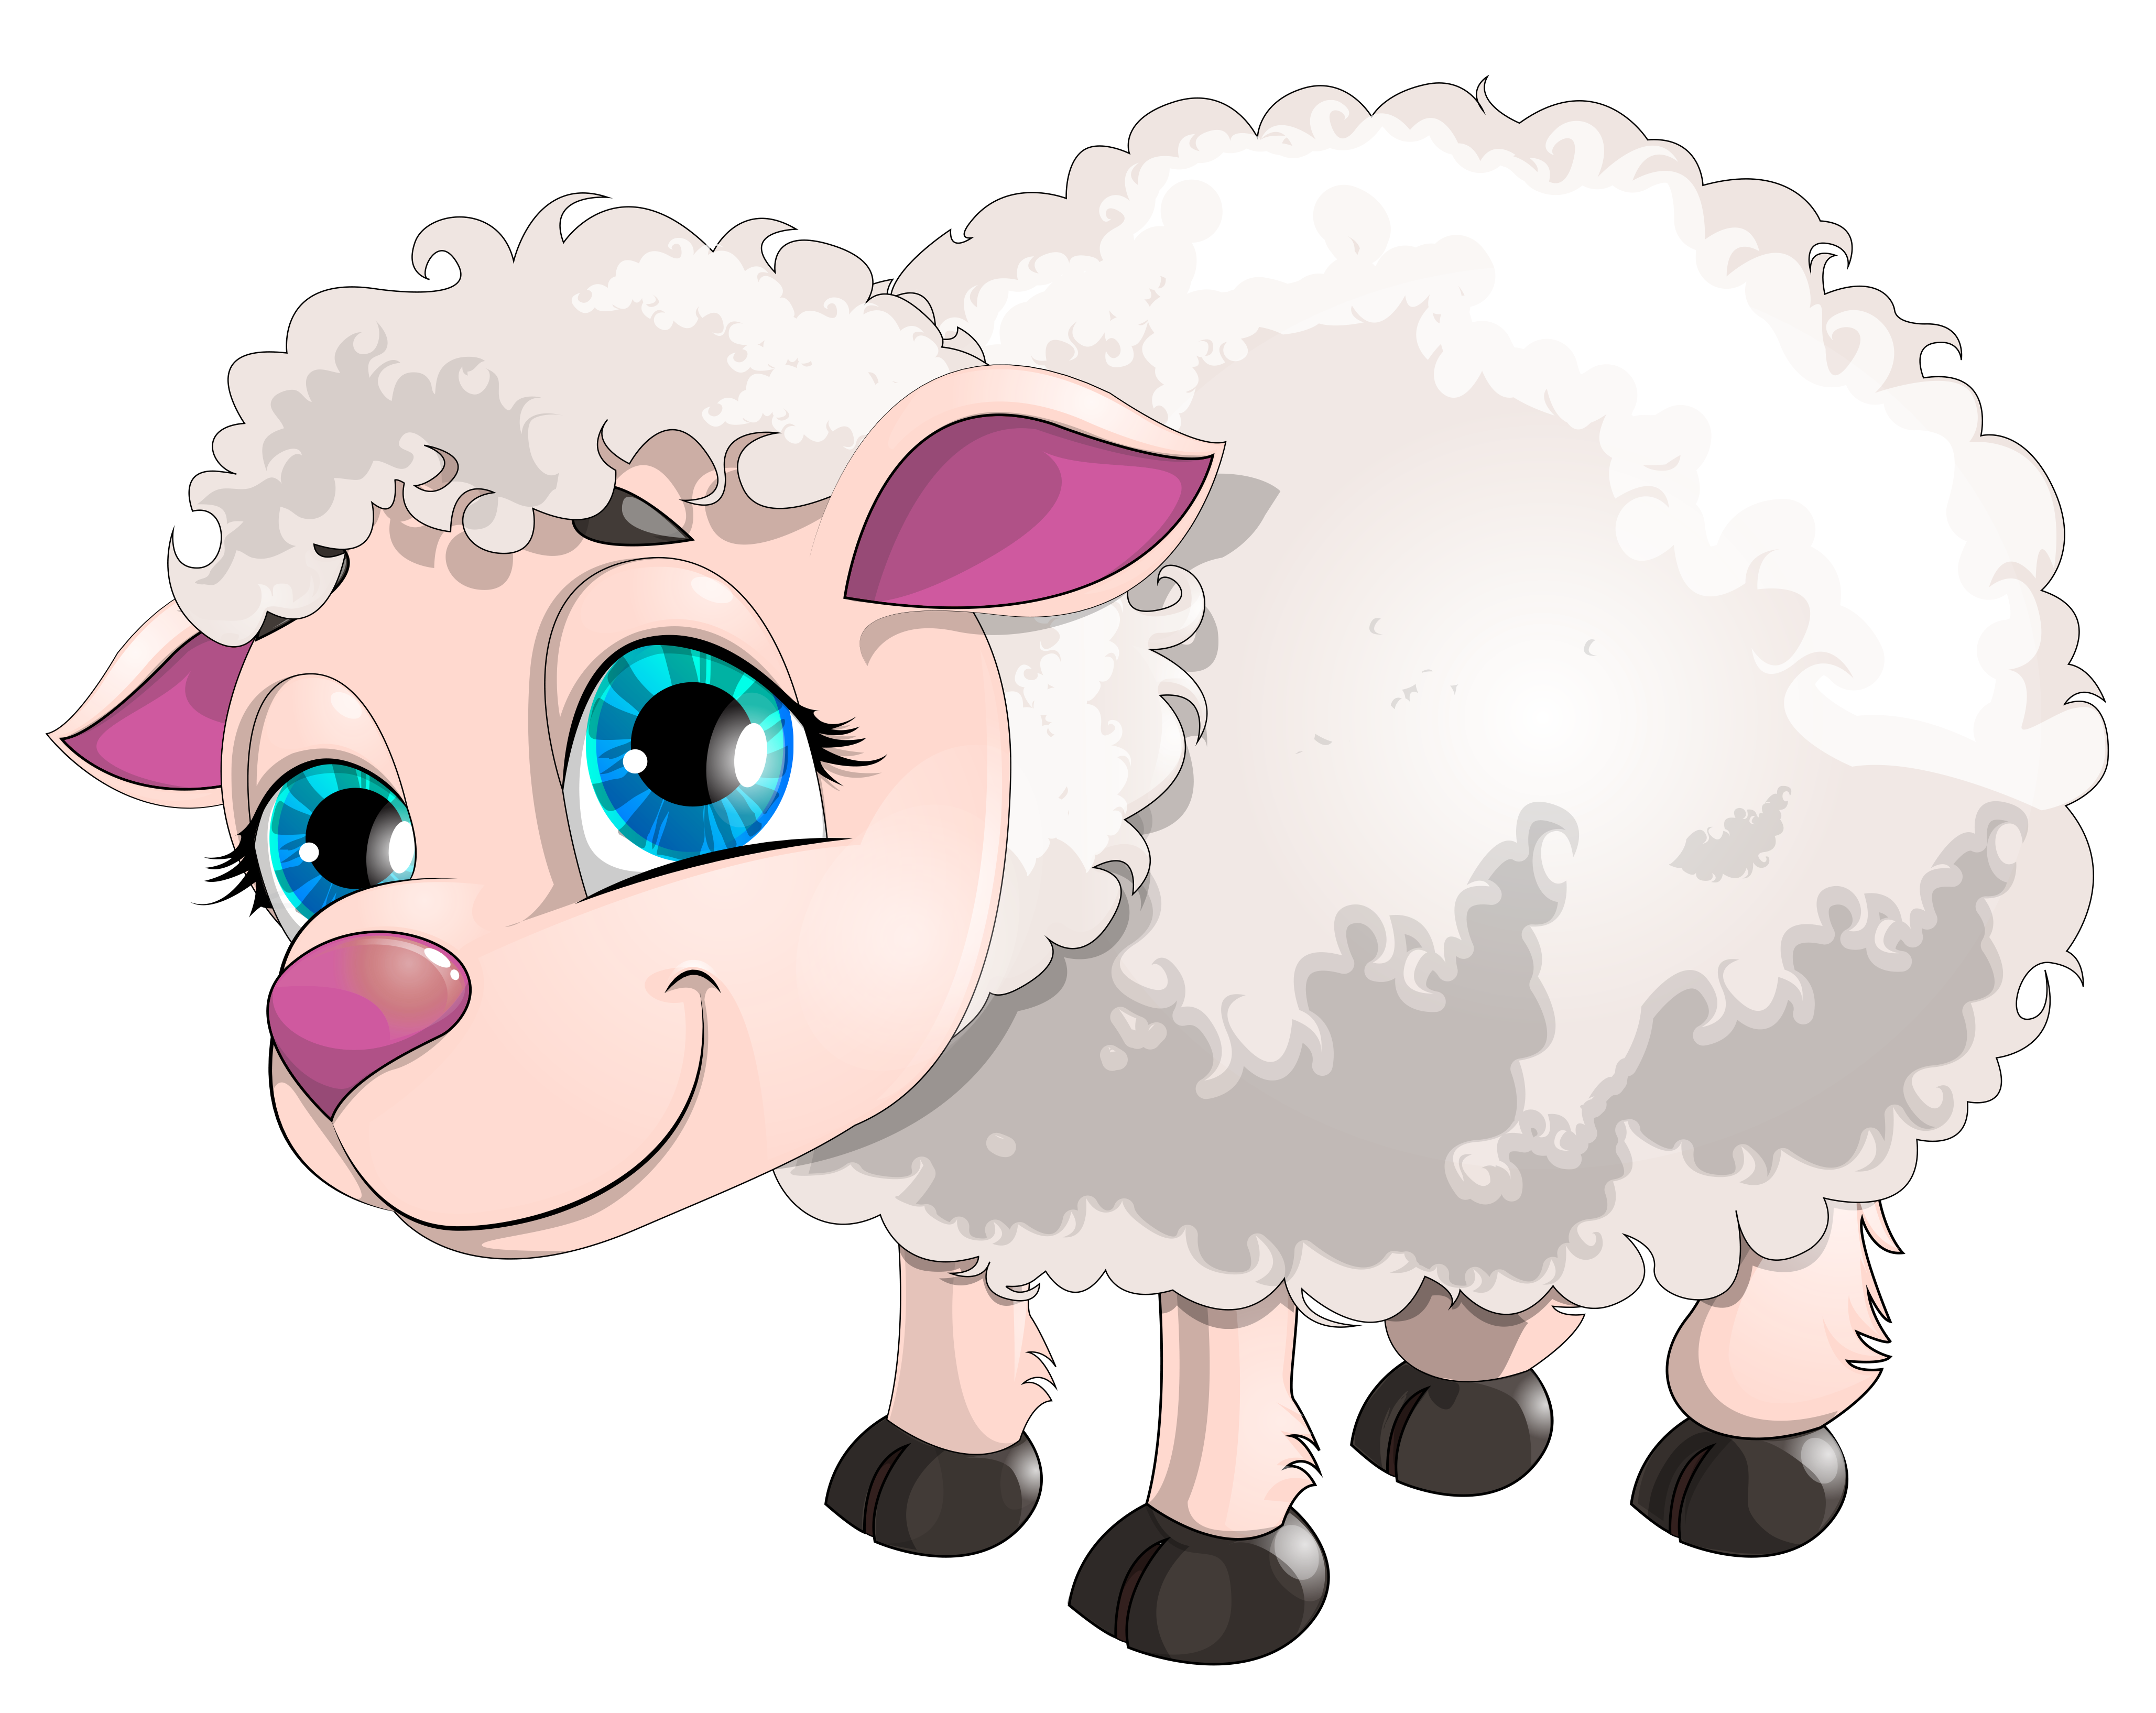 Lamb clipart easter. Cute white png picture